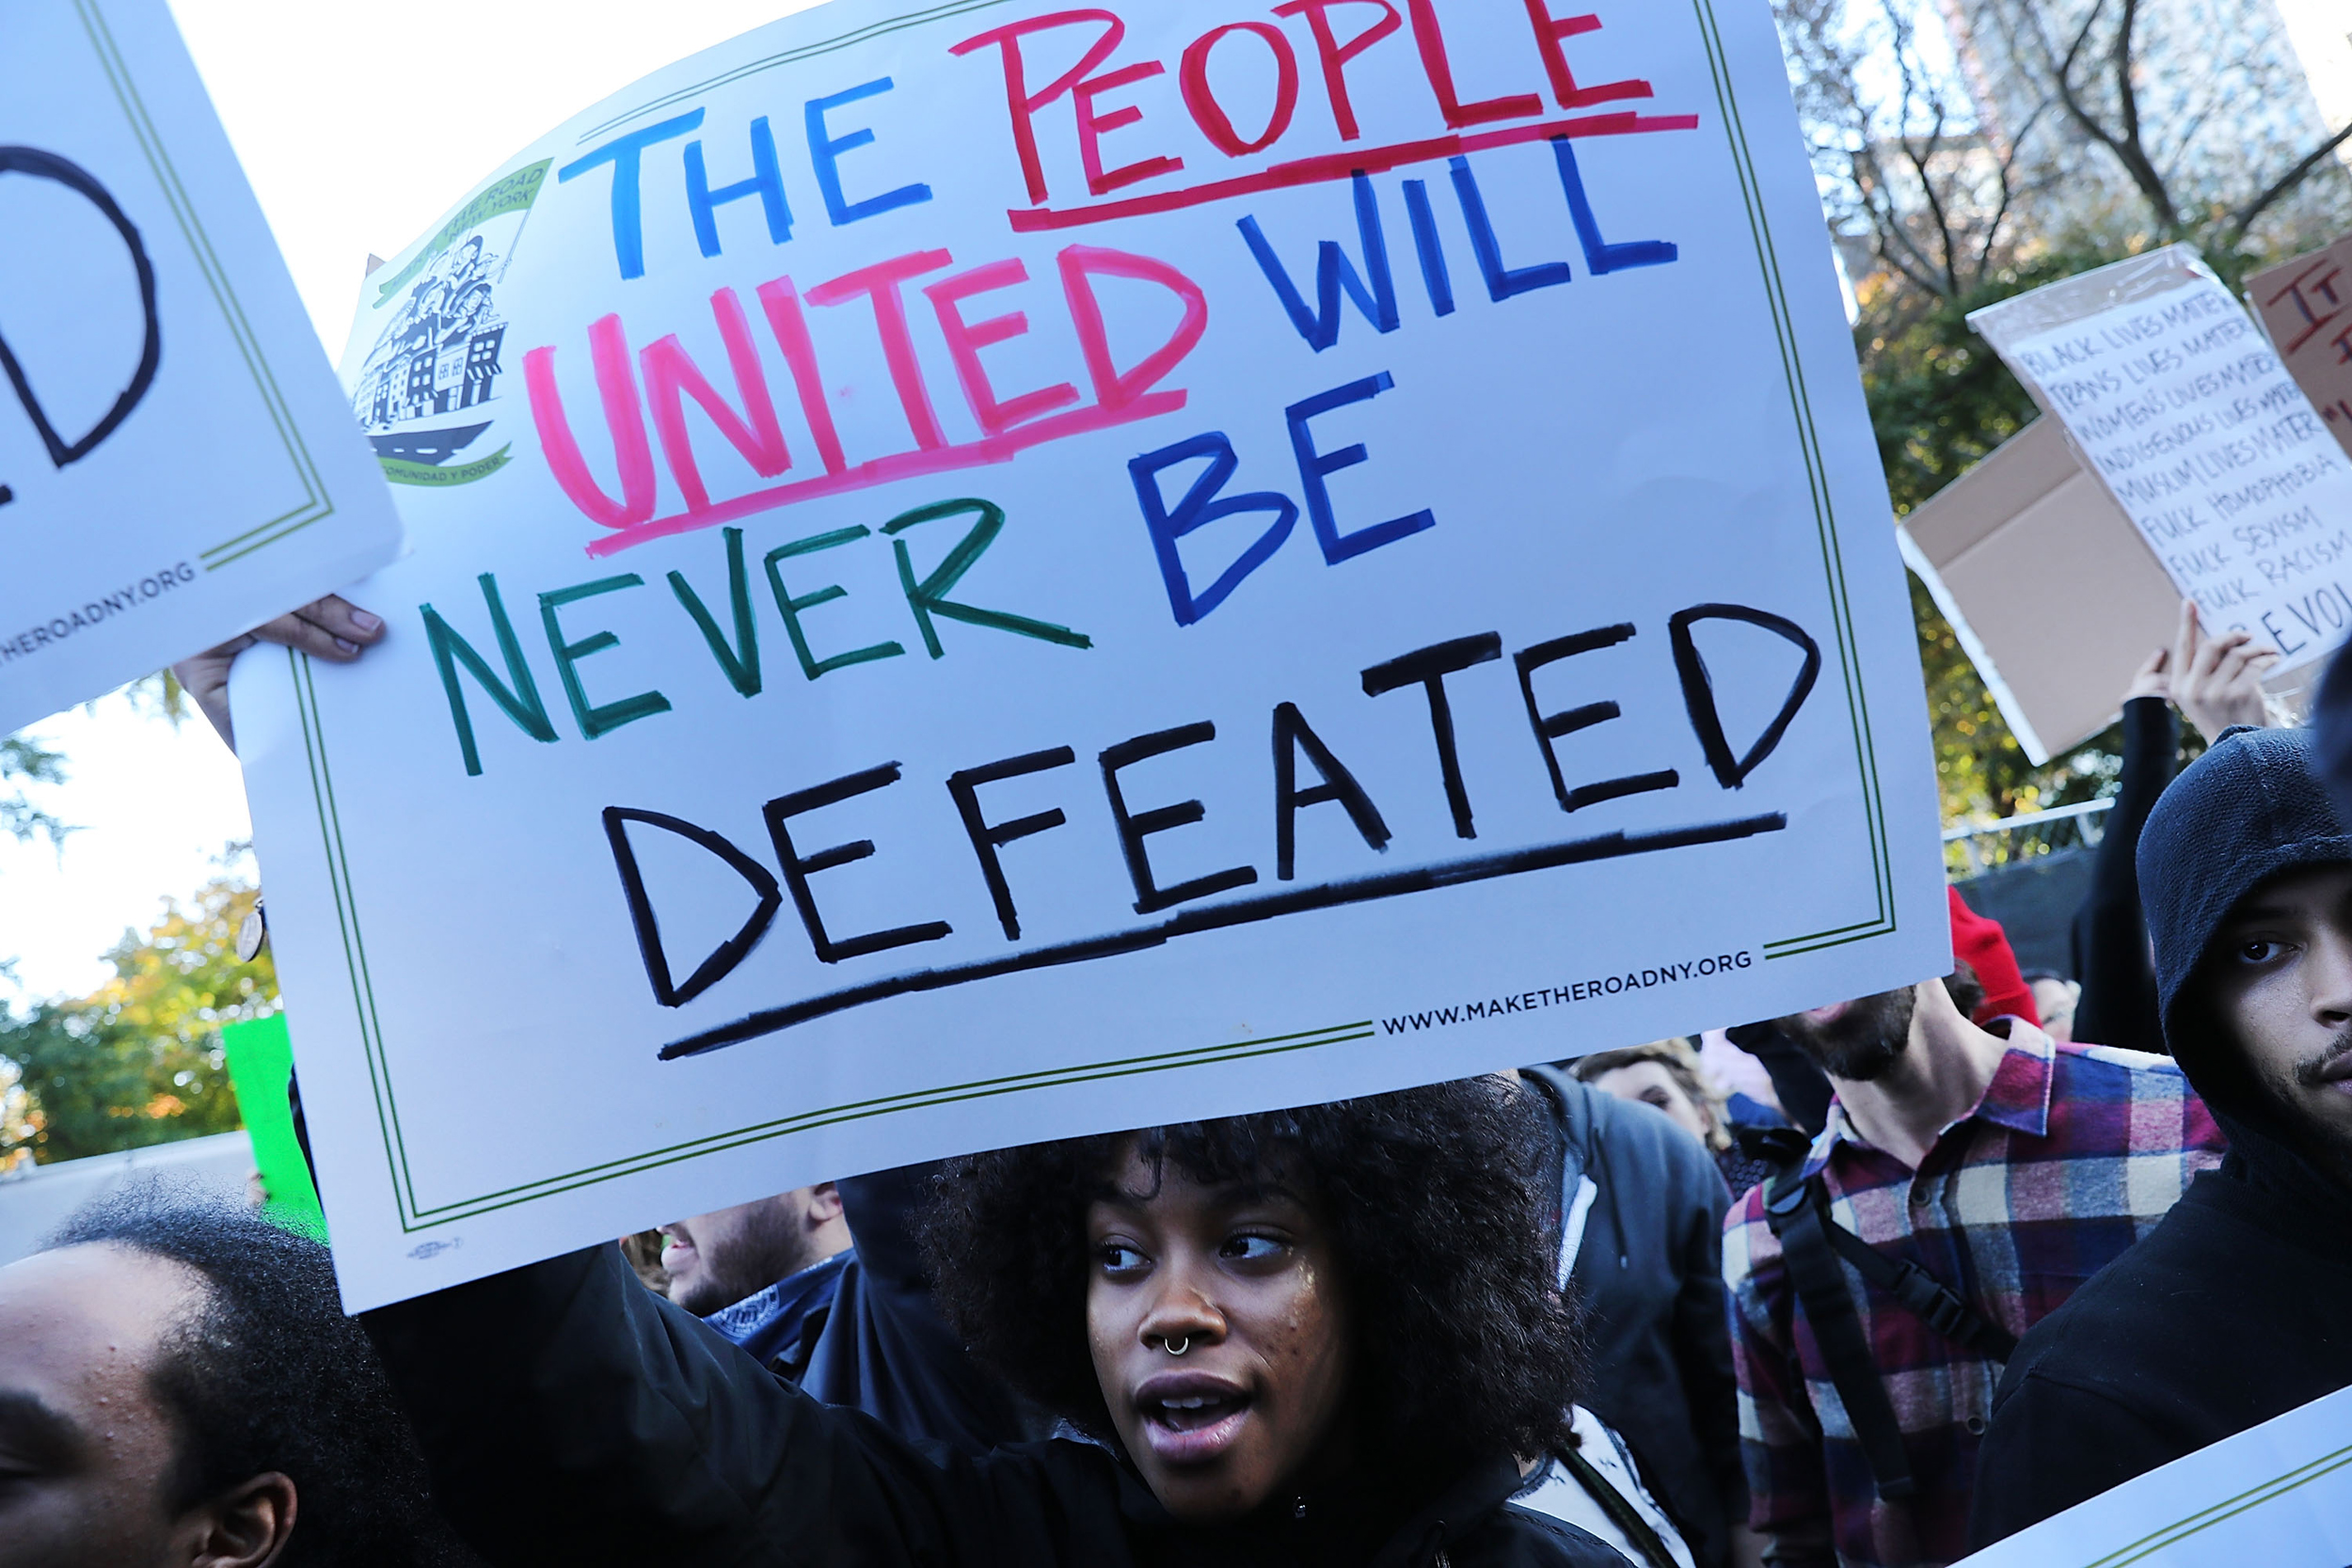 Thousands of anti-Donald Trump protesters, including many pro-immigrant groups, hold a demonstration outside of a Trump property as New Yorkers react to the election of Donald Trump as President of the United States on November 13, 2016 in New York City.